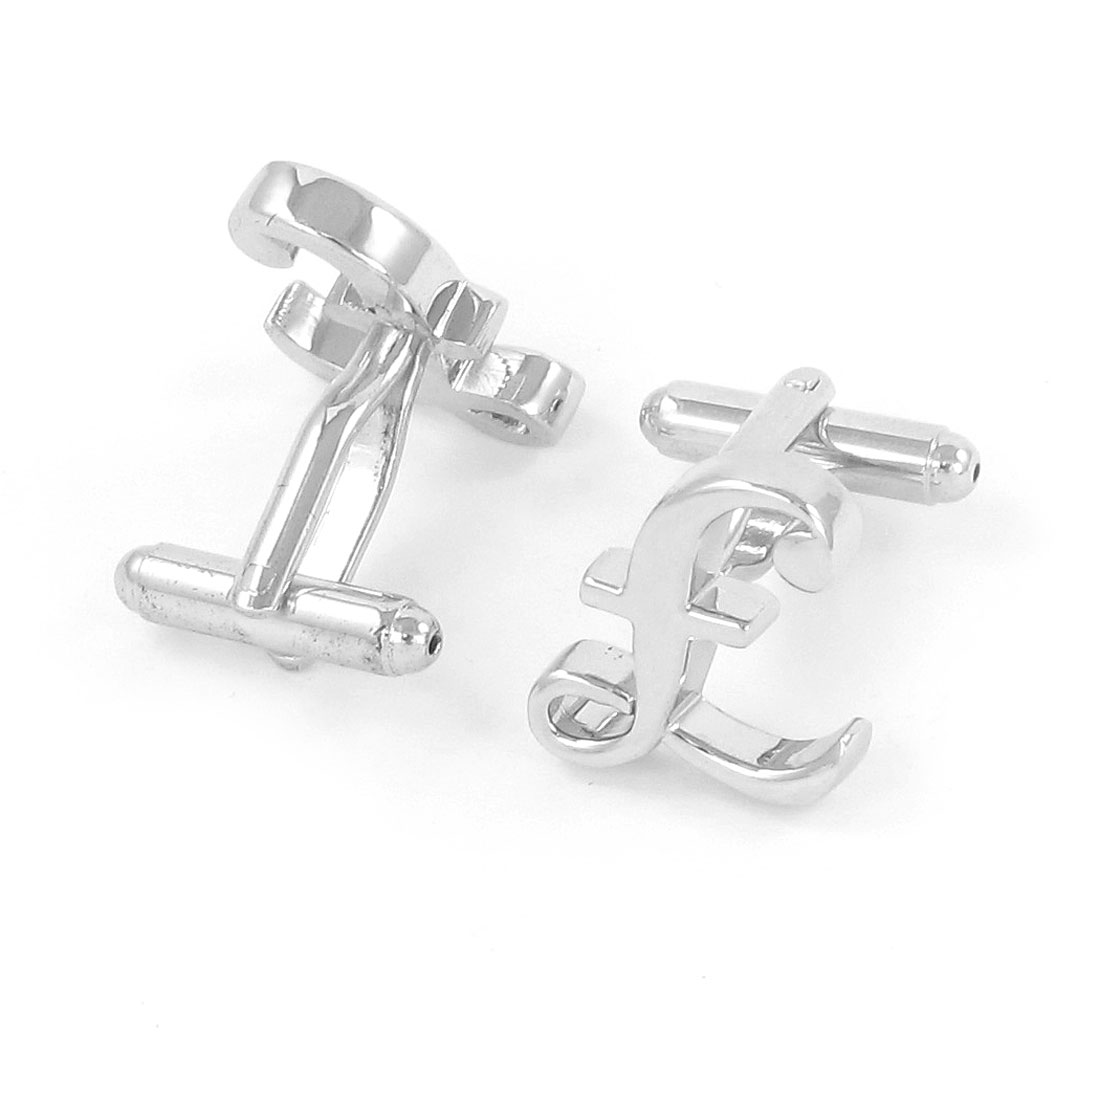 Pair Men Metallic Letter F Design Tuxedo Shirt Decor Cufflink